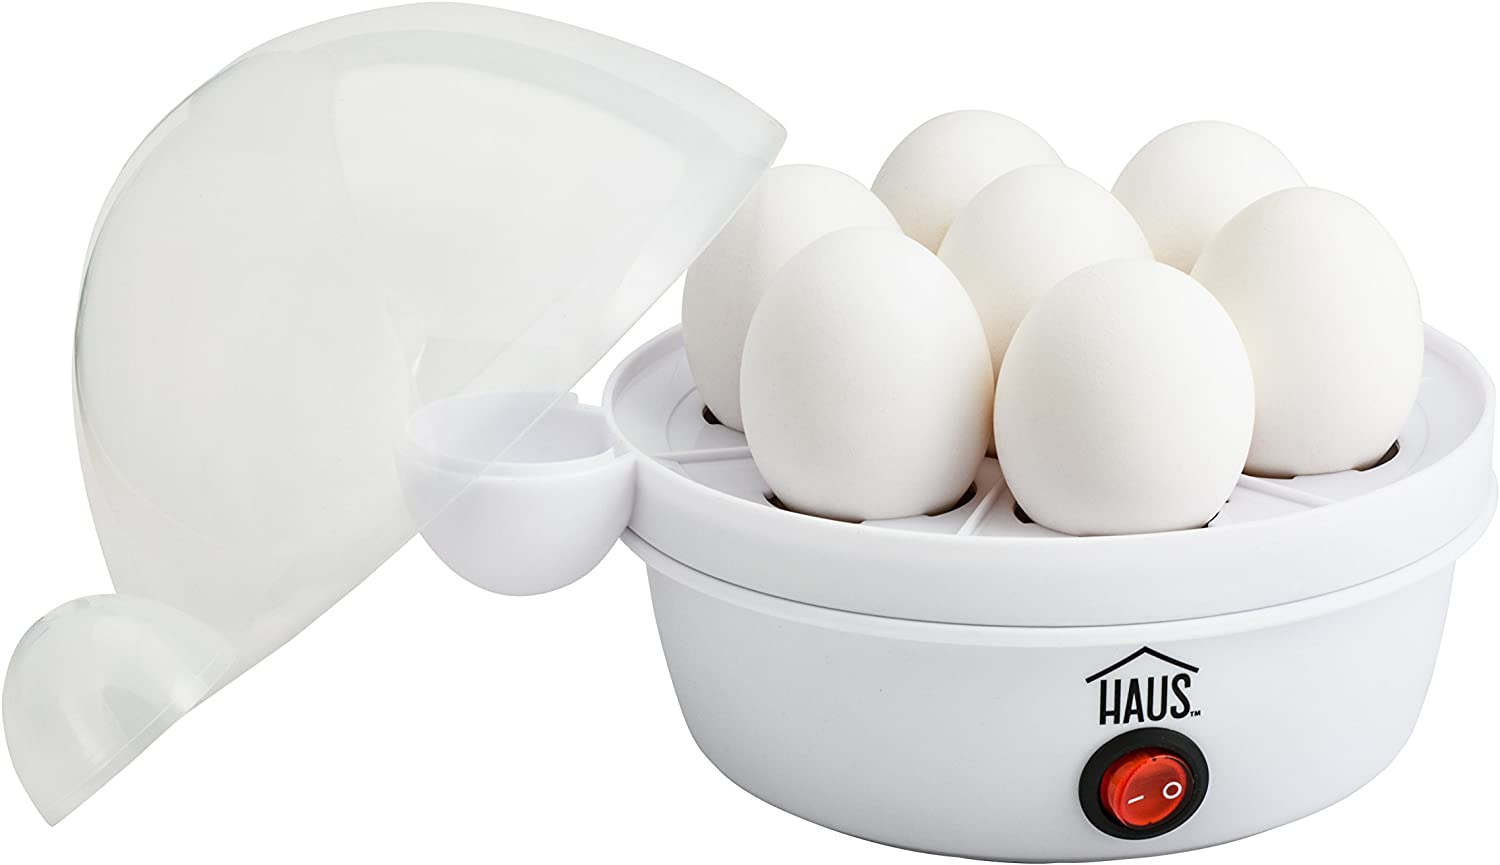 Haus HEC 44225 W Rapid Egg Cooker Buzzer Indicator Makes Hard Boiled, Poached, Scrambled Or Omelets, 7Eggs, White